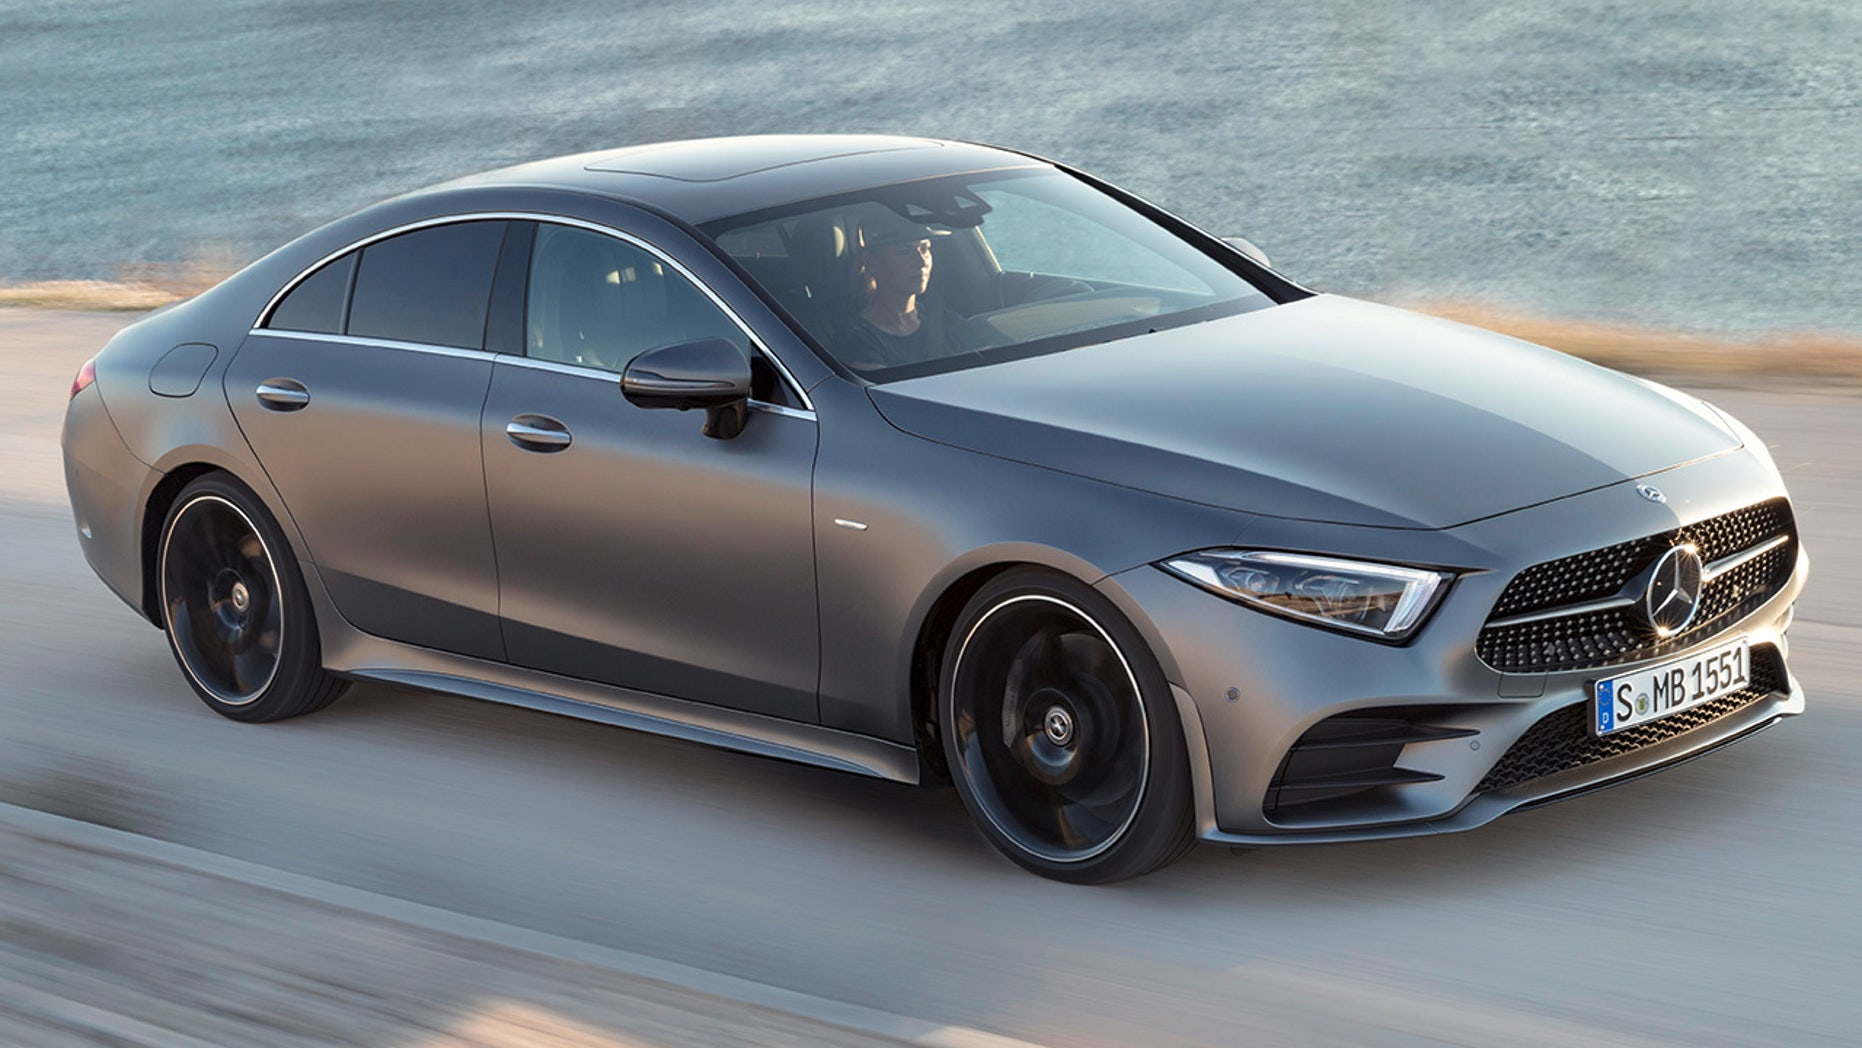 2019 mercedes benz cls450 test drive benz gets back inline with